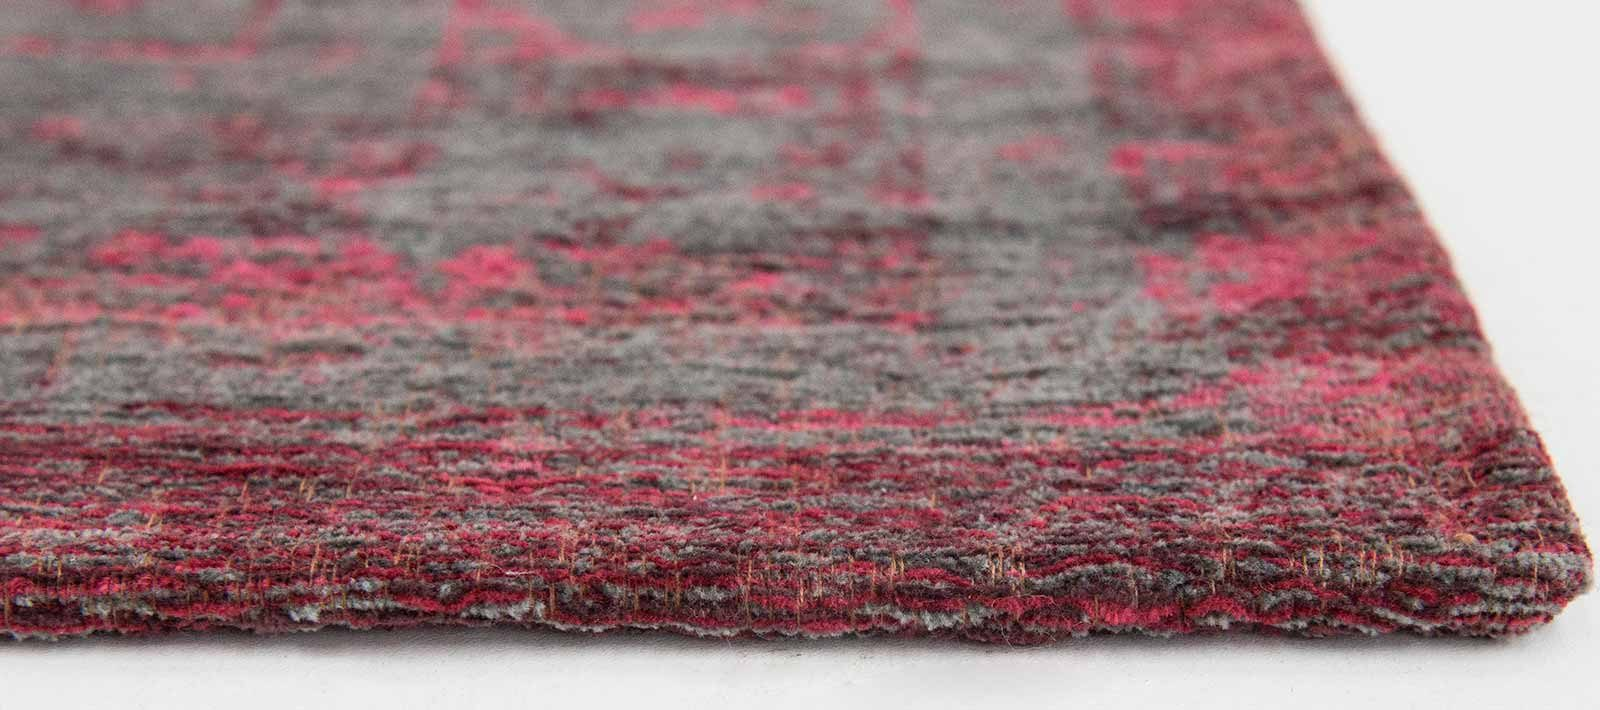 tapis Louis De Poortere LX8261 Fading World Medaillon Pink Flash side